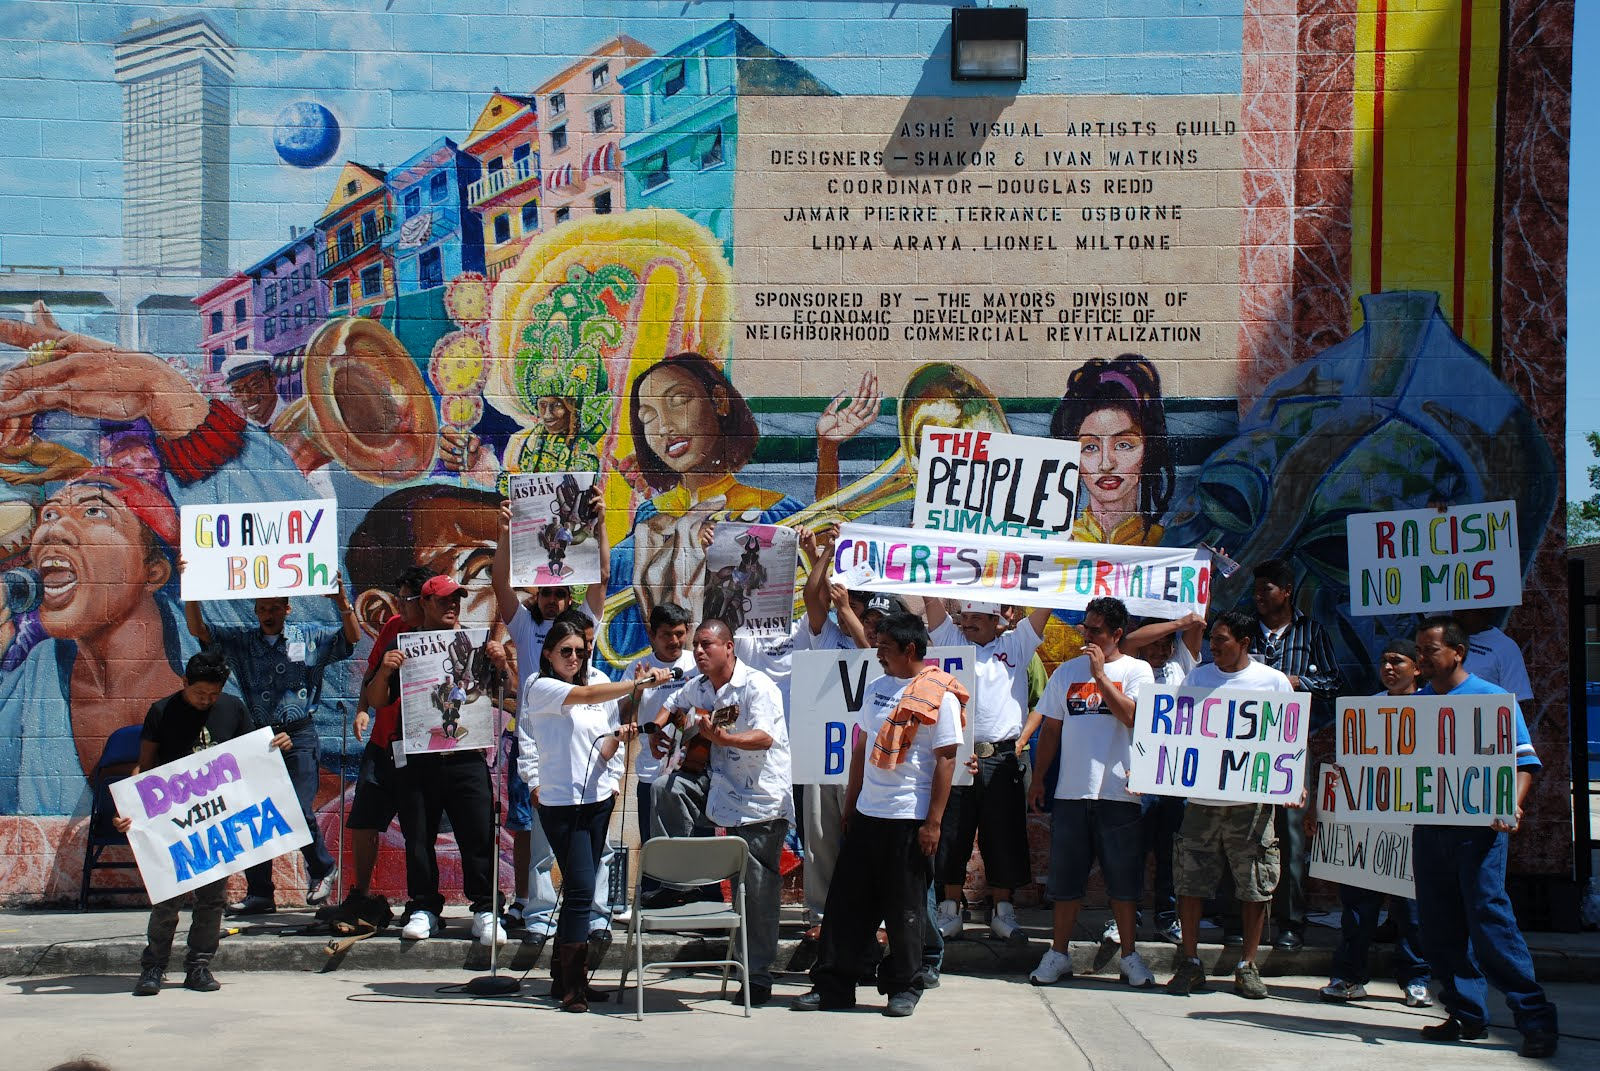 Justice Roars New Orleans Workers Center Calls On Janet Napolitano